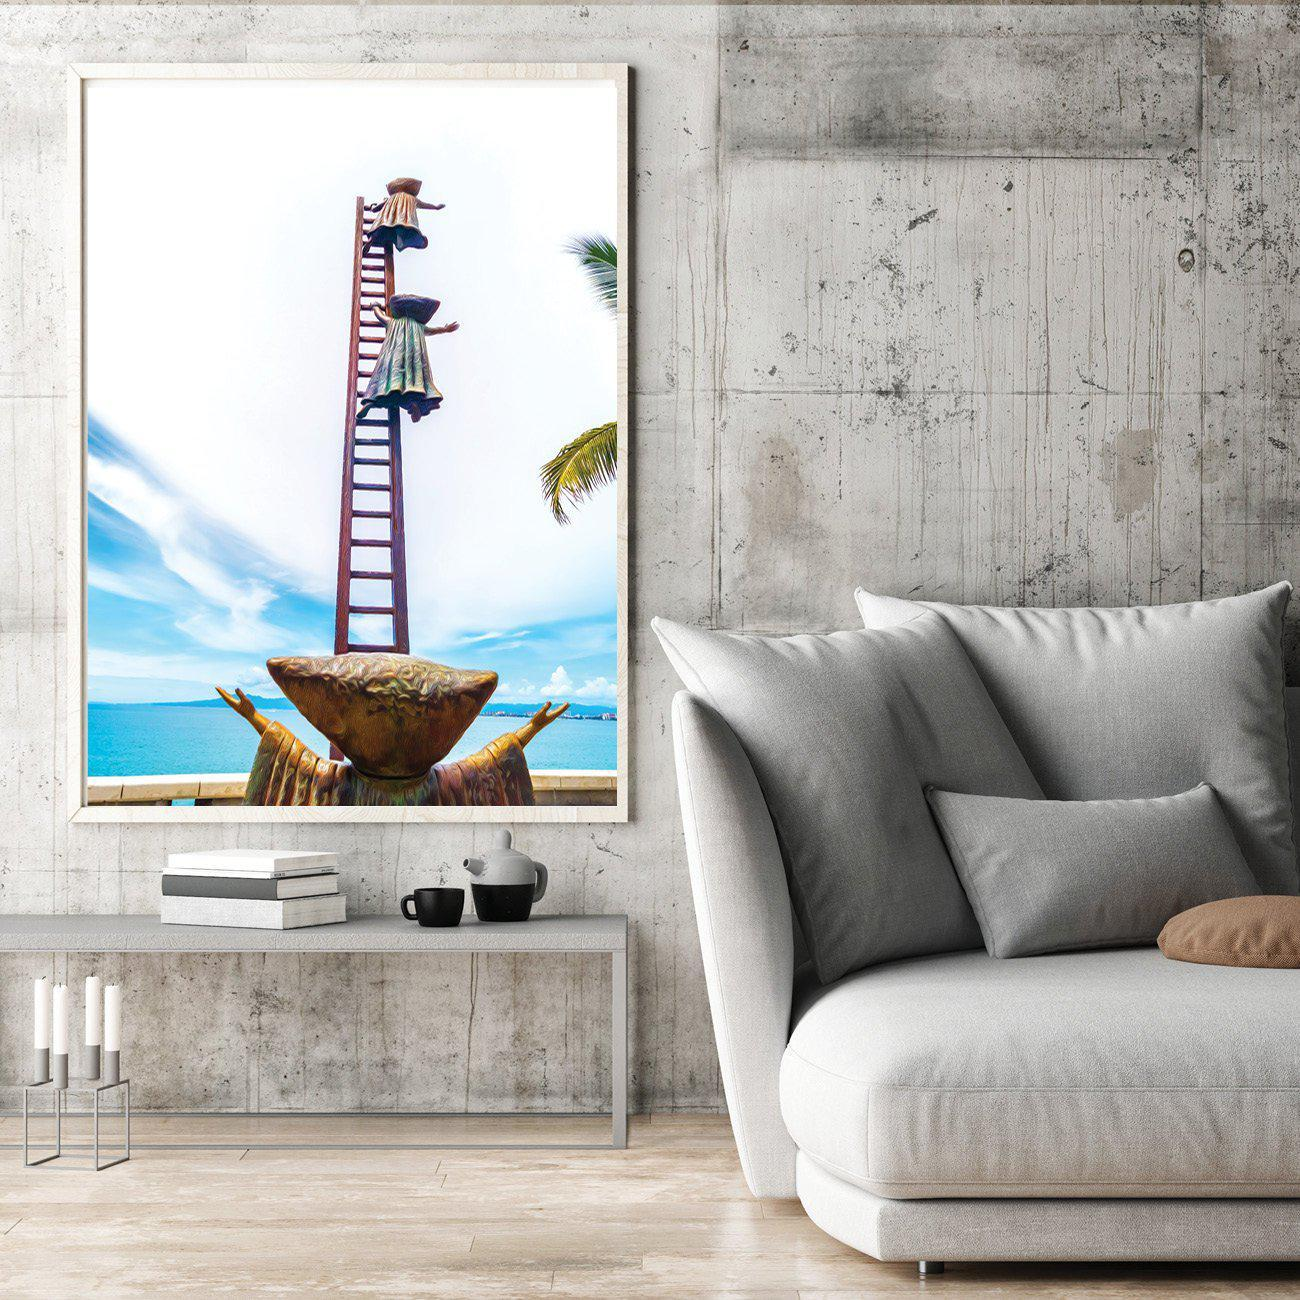 Walk On The Malecon - Mothers Love - 2 Single Edition Photography Print - Yvette Michele Art